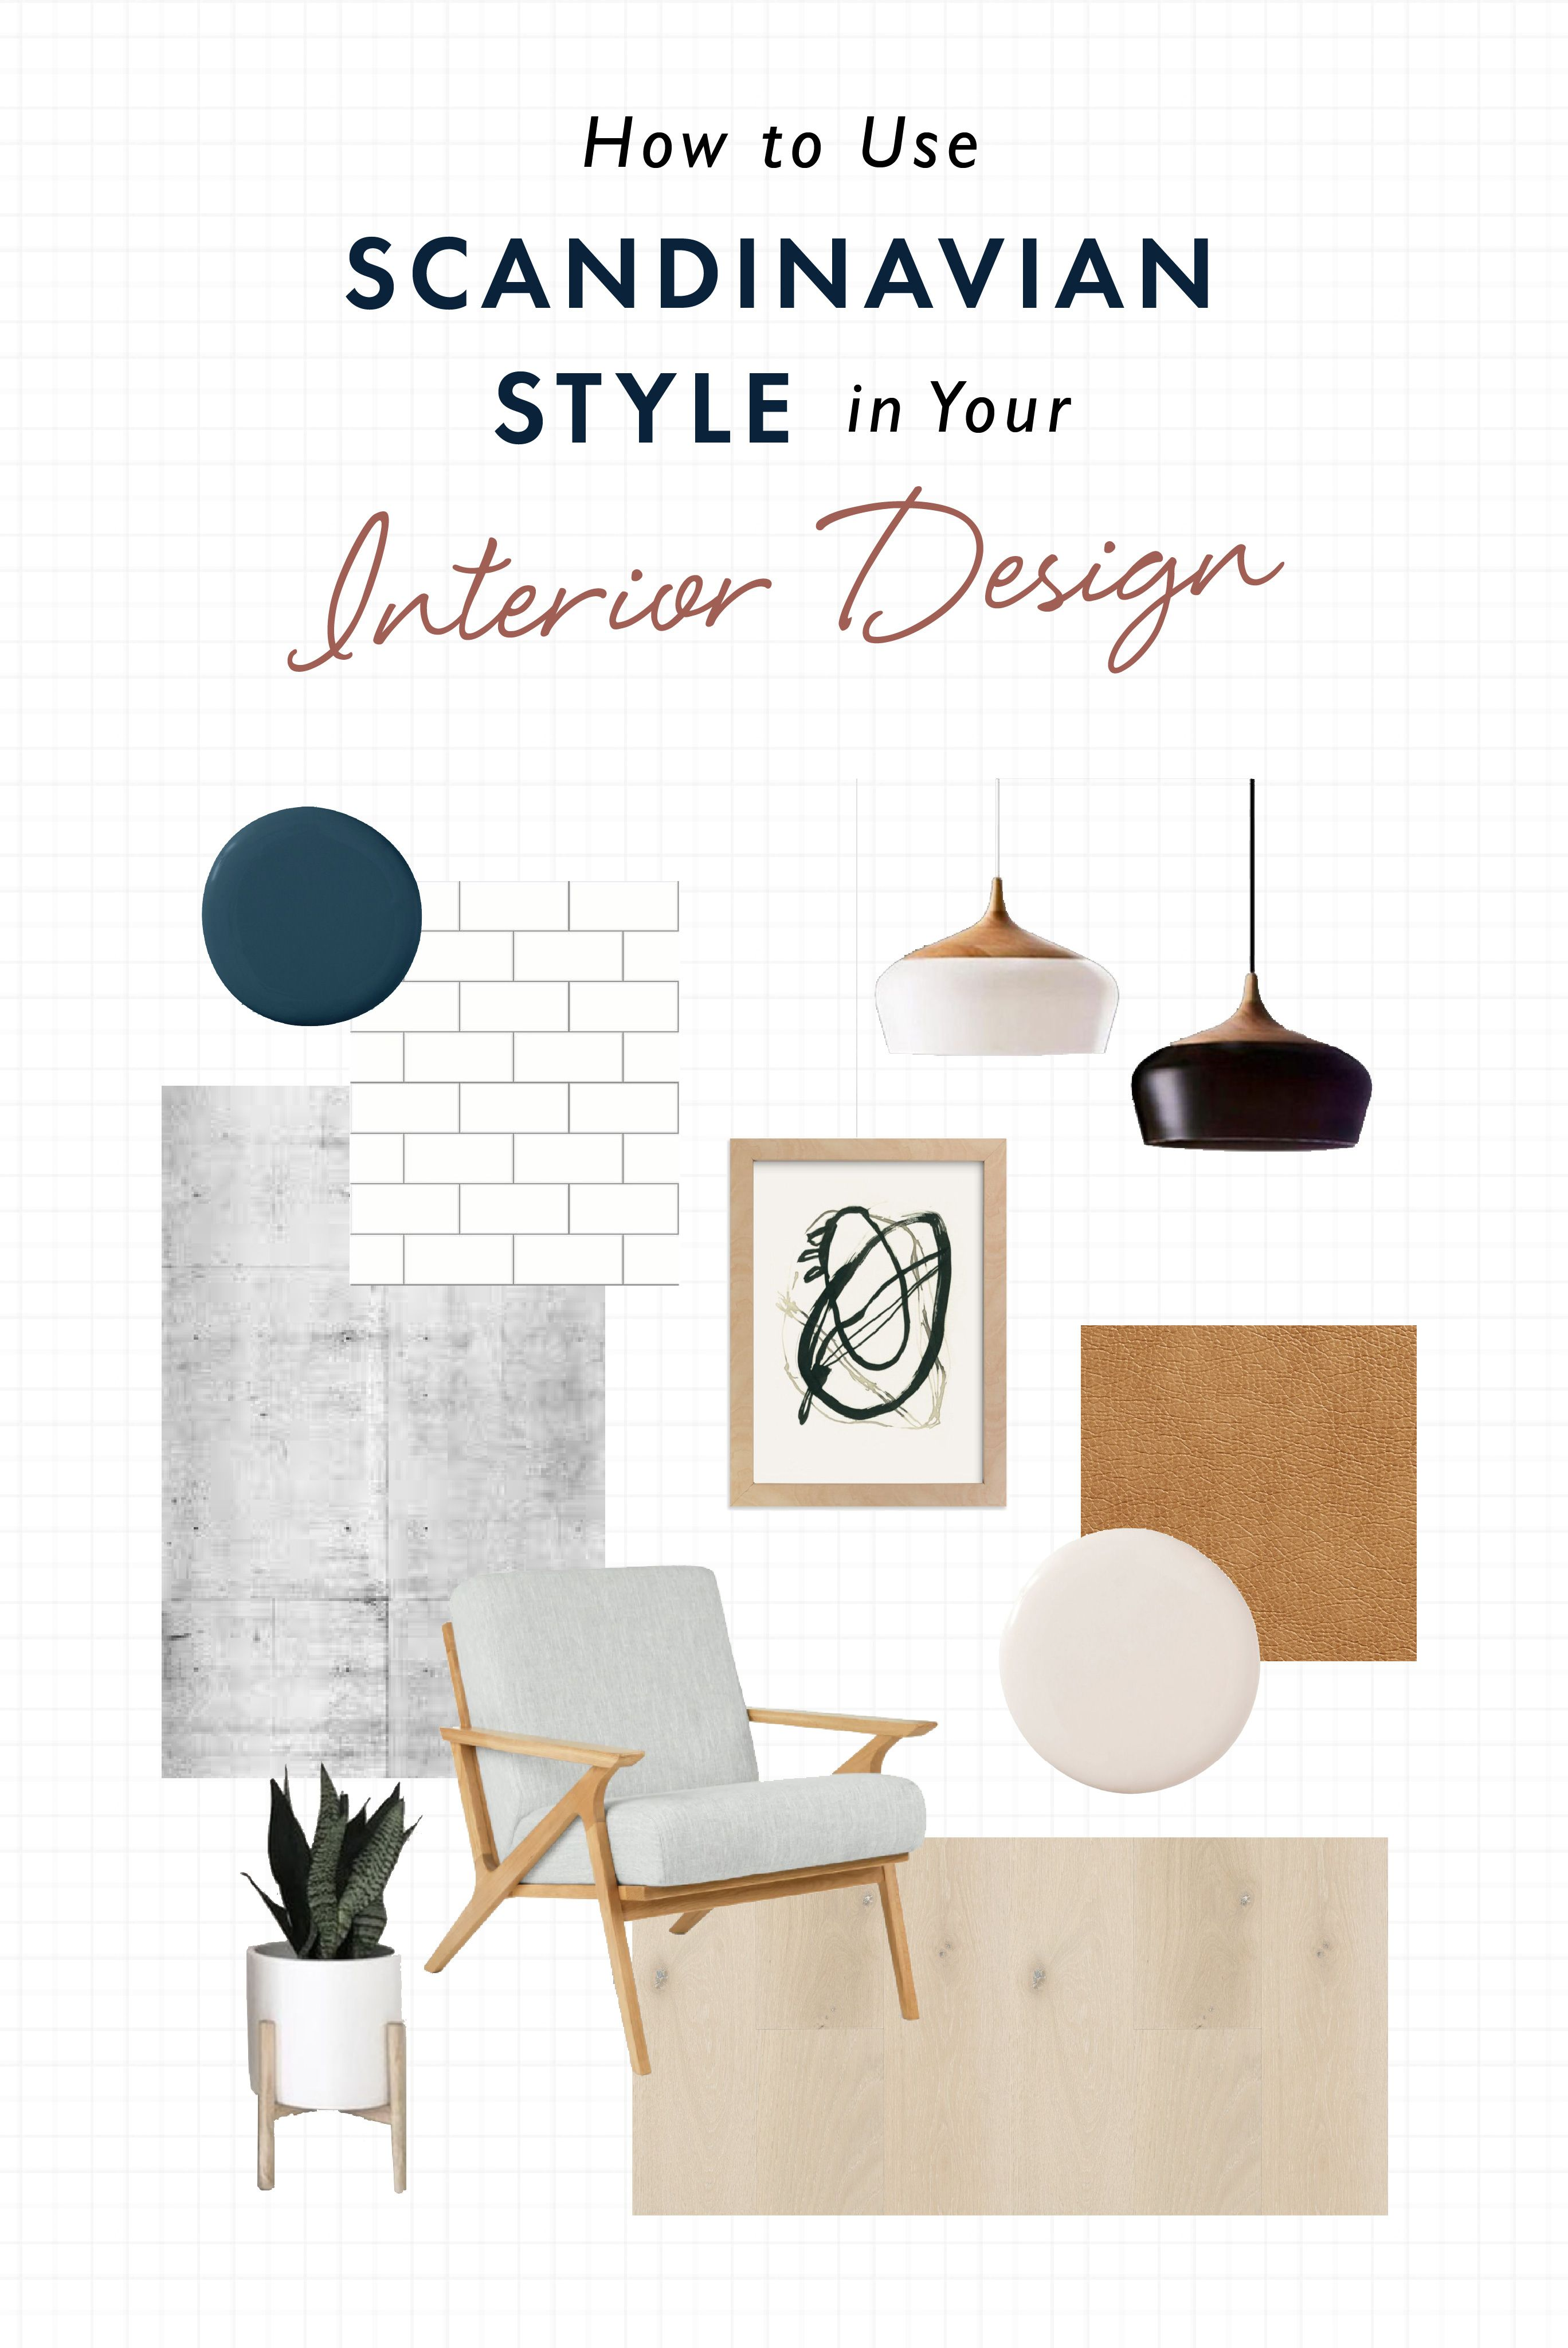 How To Use Scandinavian Style In Your Interior Design The Blog By Jasmine Roth In 2020 Scandinavian Style Scandinavian Style Interior Scandinavian Decor Living Room